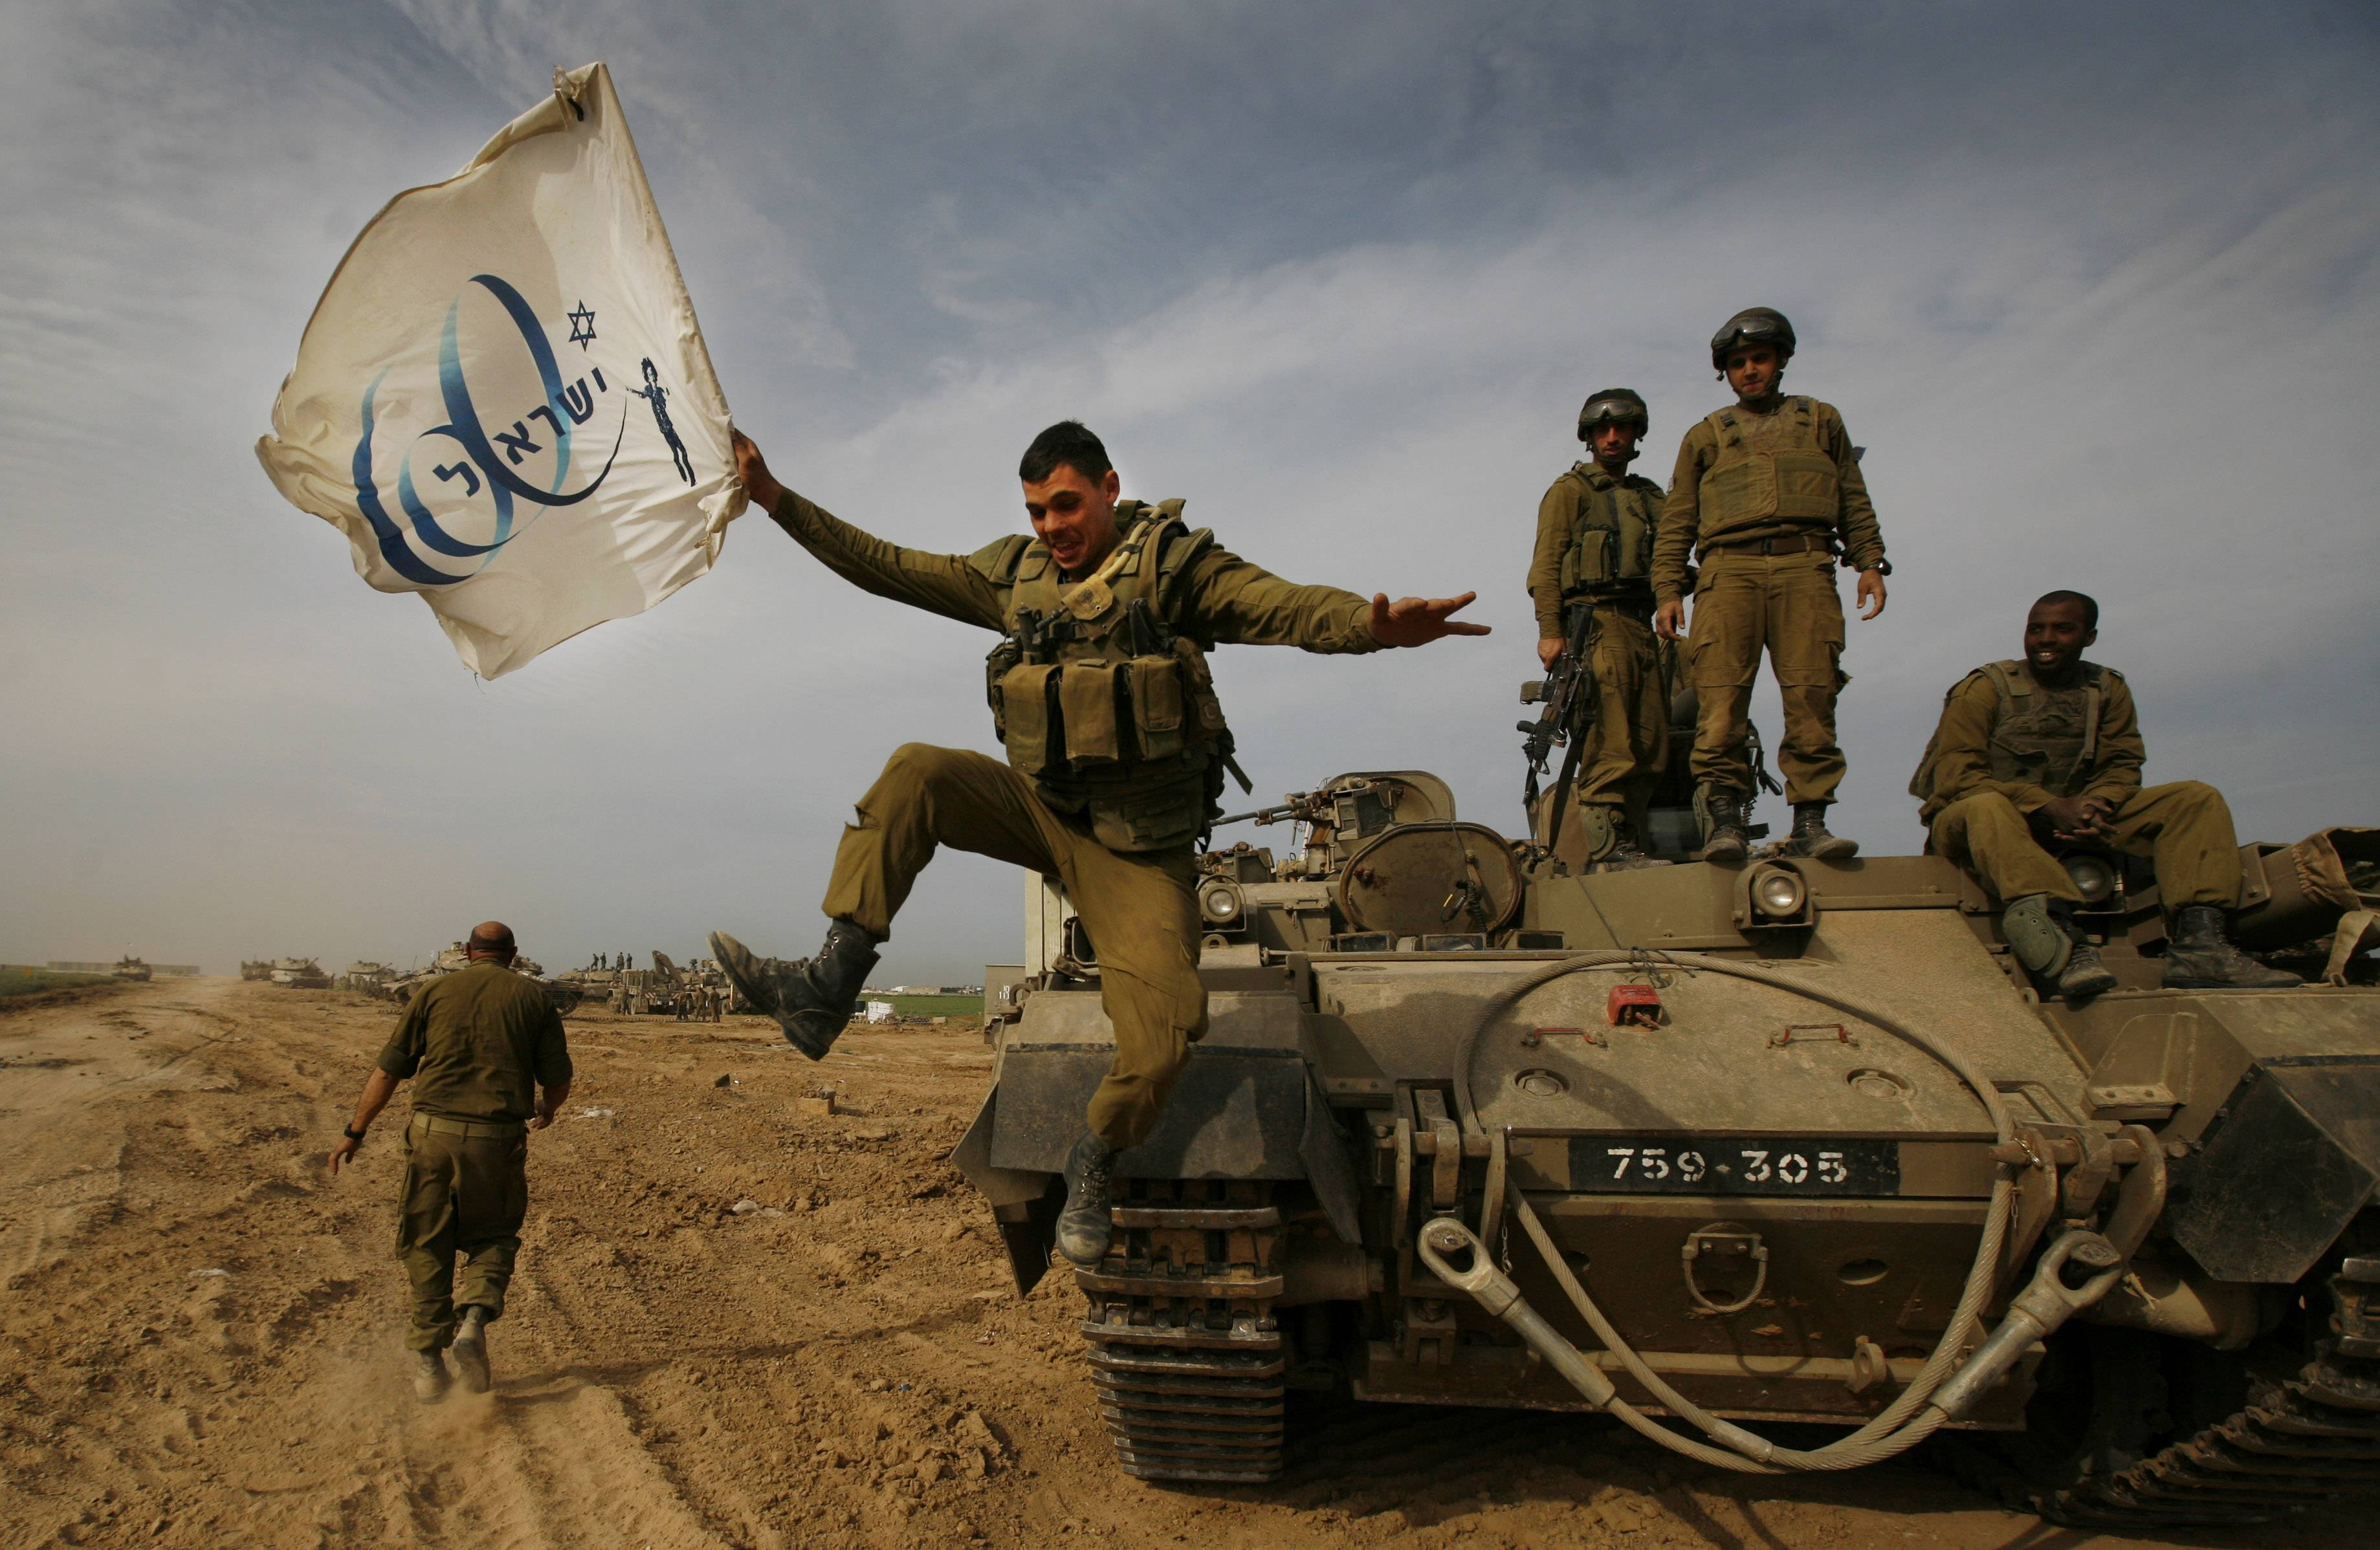 In this Friday, Jan. 16, 2009 file photo made by Associated Press photographer Anja Niedringhaus, an Israeli soldier jumps off an armored vehicle carrying a flag of Israel's 60th anniversary as he celebrates with his unit their return from the Gaza Strip on the Israeli side of the border.